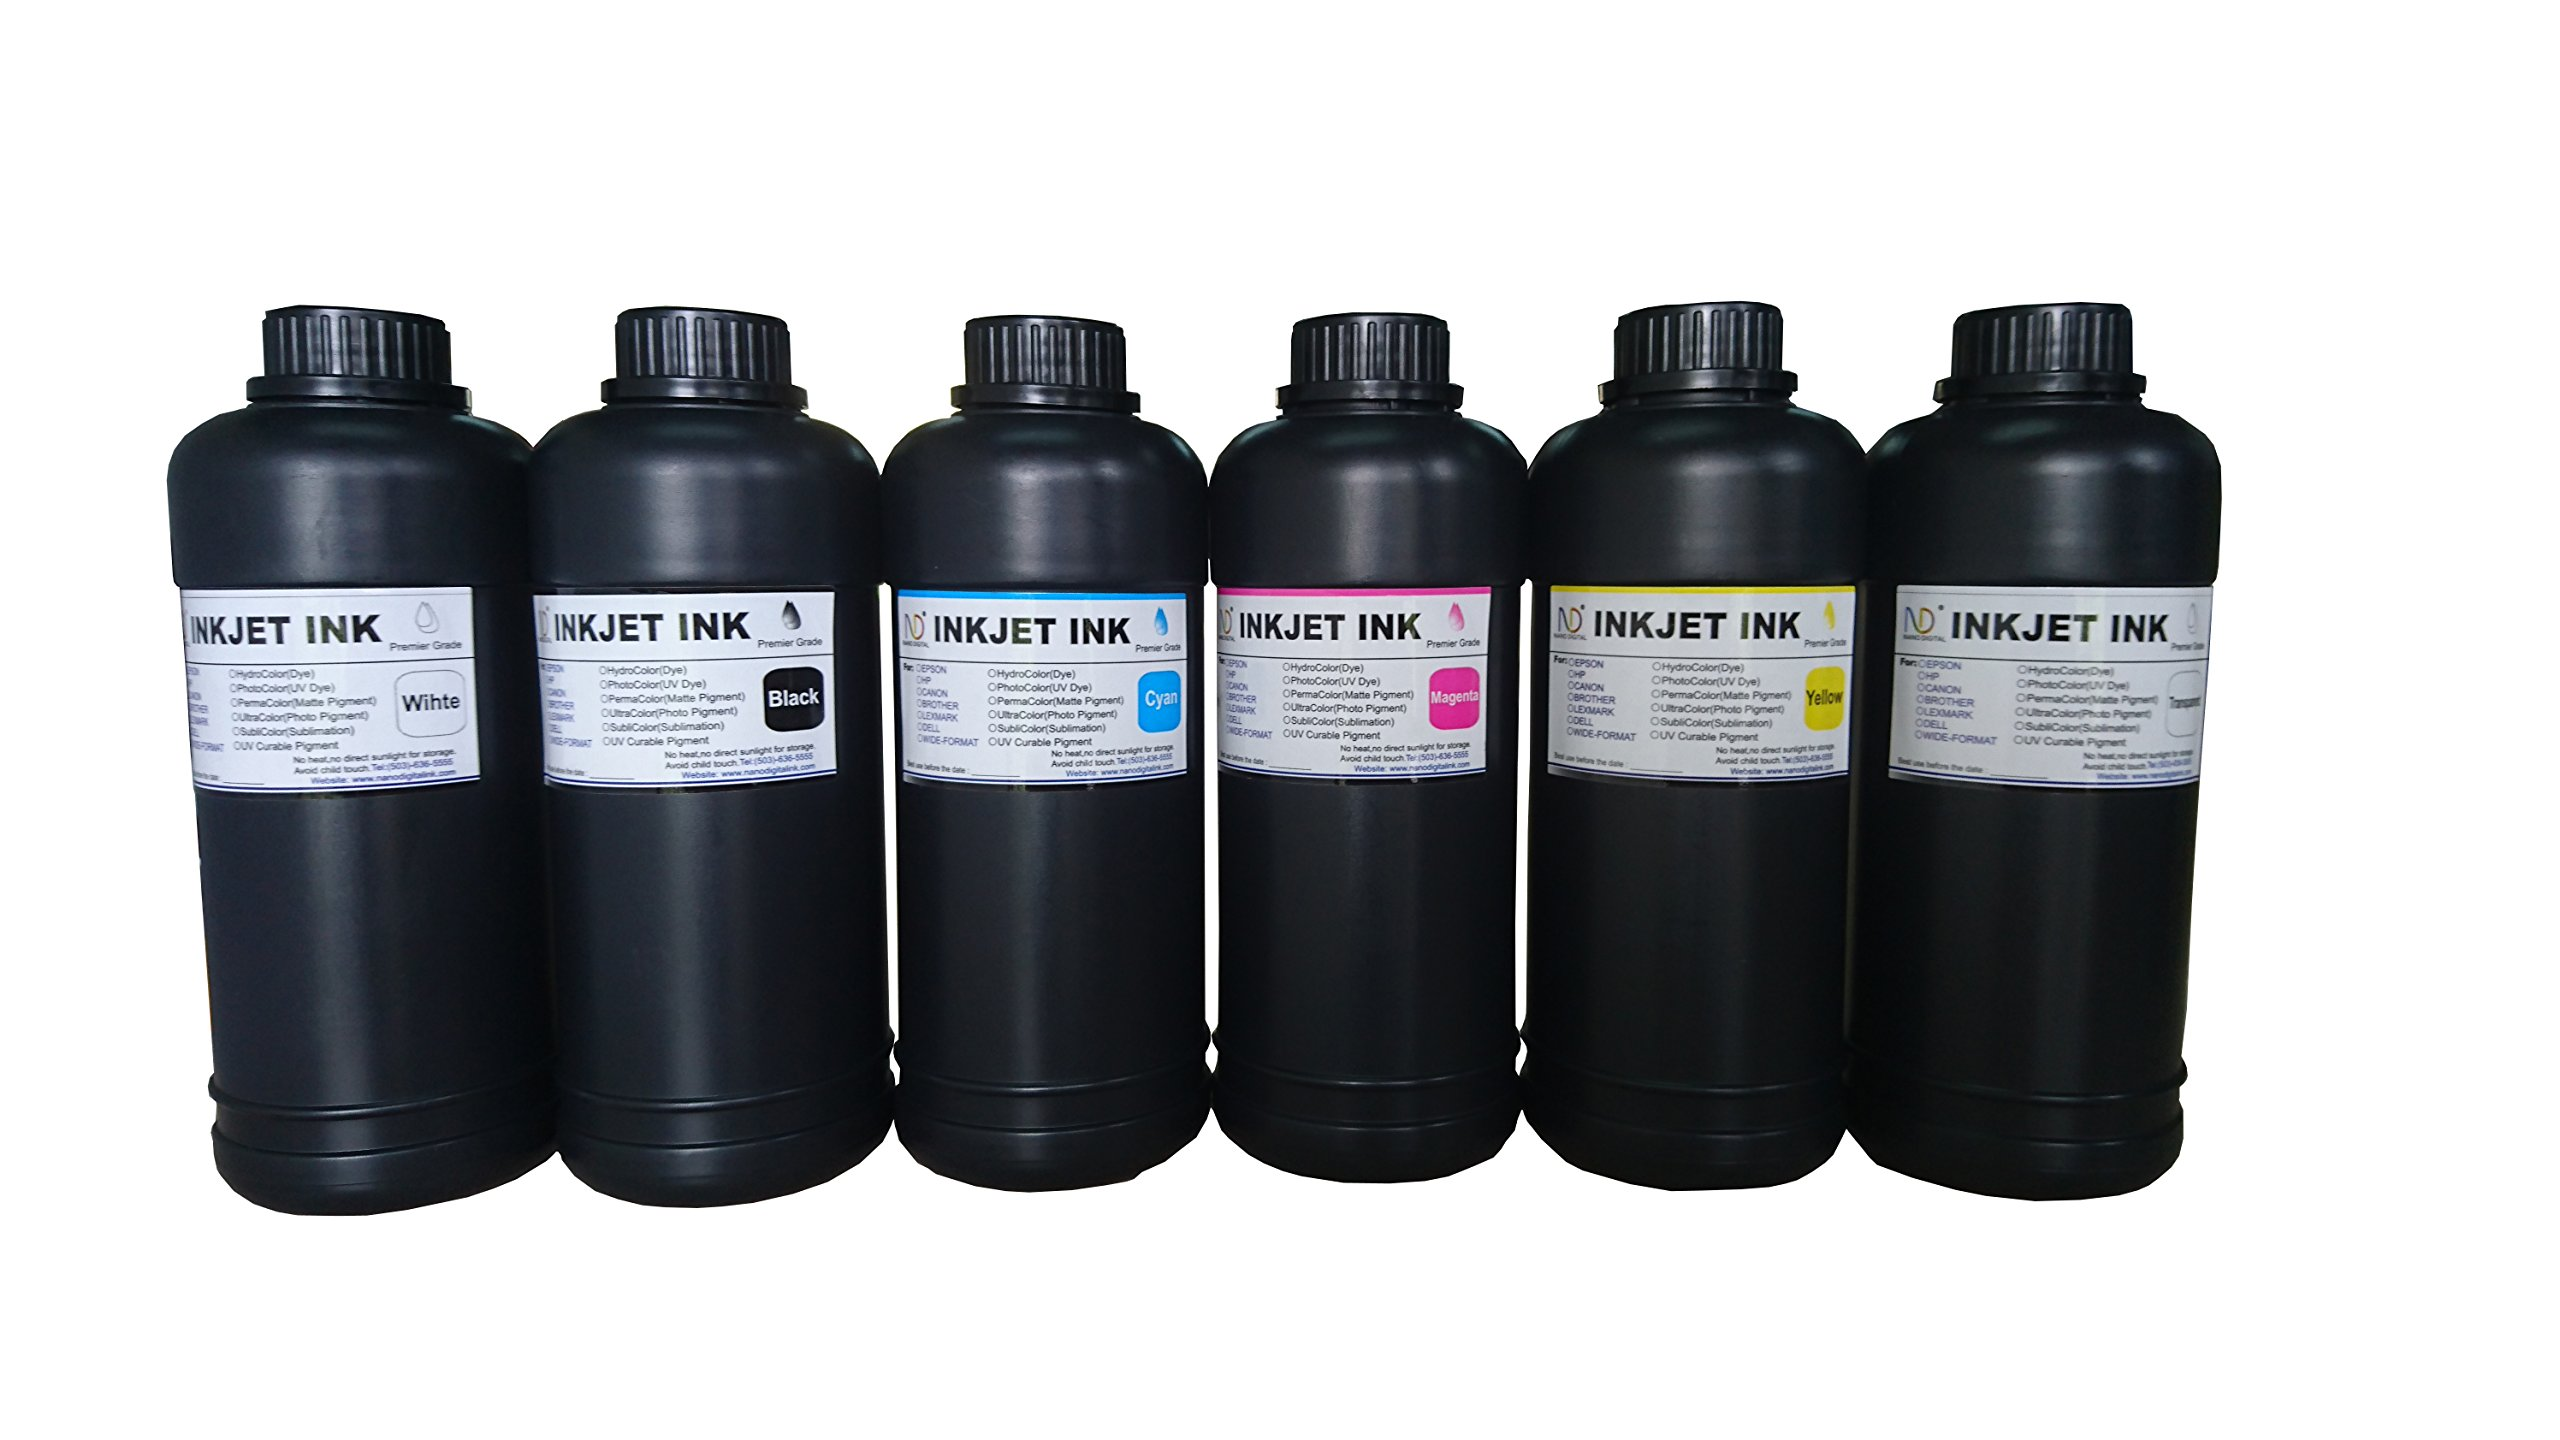 6x500ml ND Brand Premium Led UV Curable ink for Flatbed Printer Head R290,L800,L1800,R1390,R1400,R2000,DX5,DX7